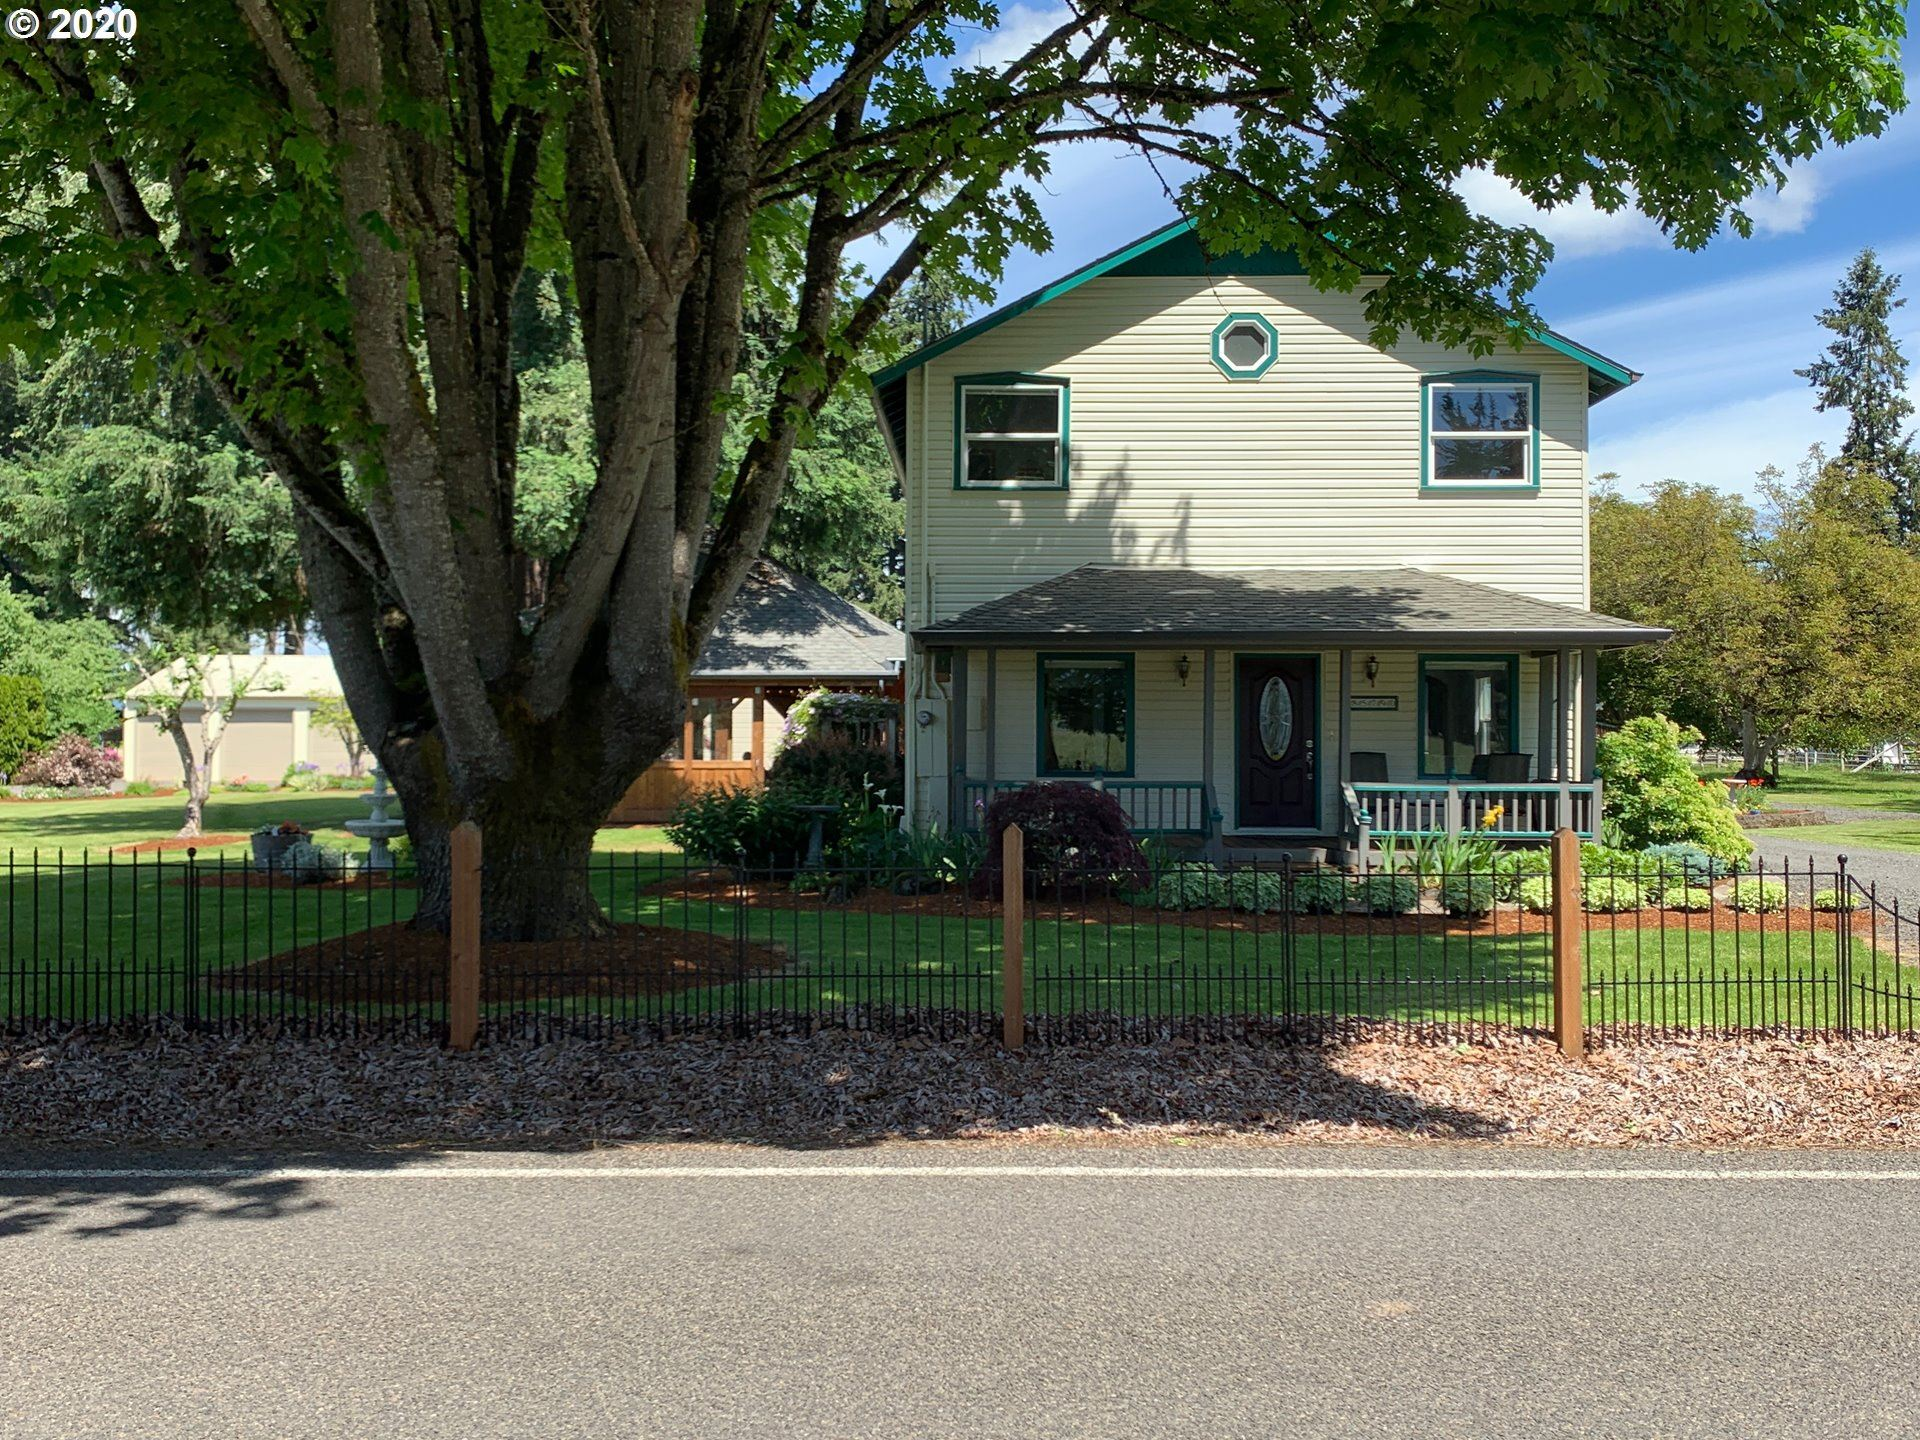 Photo for 85790 EDENVALE RD, Pleasant Hill, OR 97455 (MLS # 20126389)